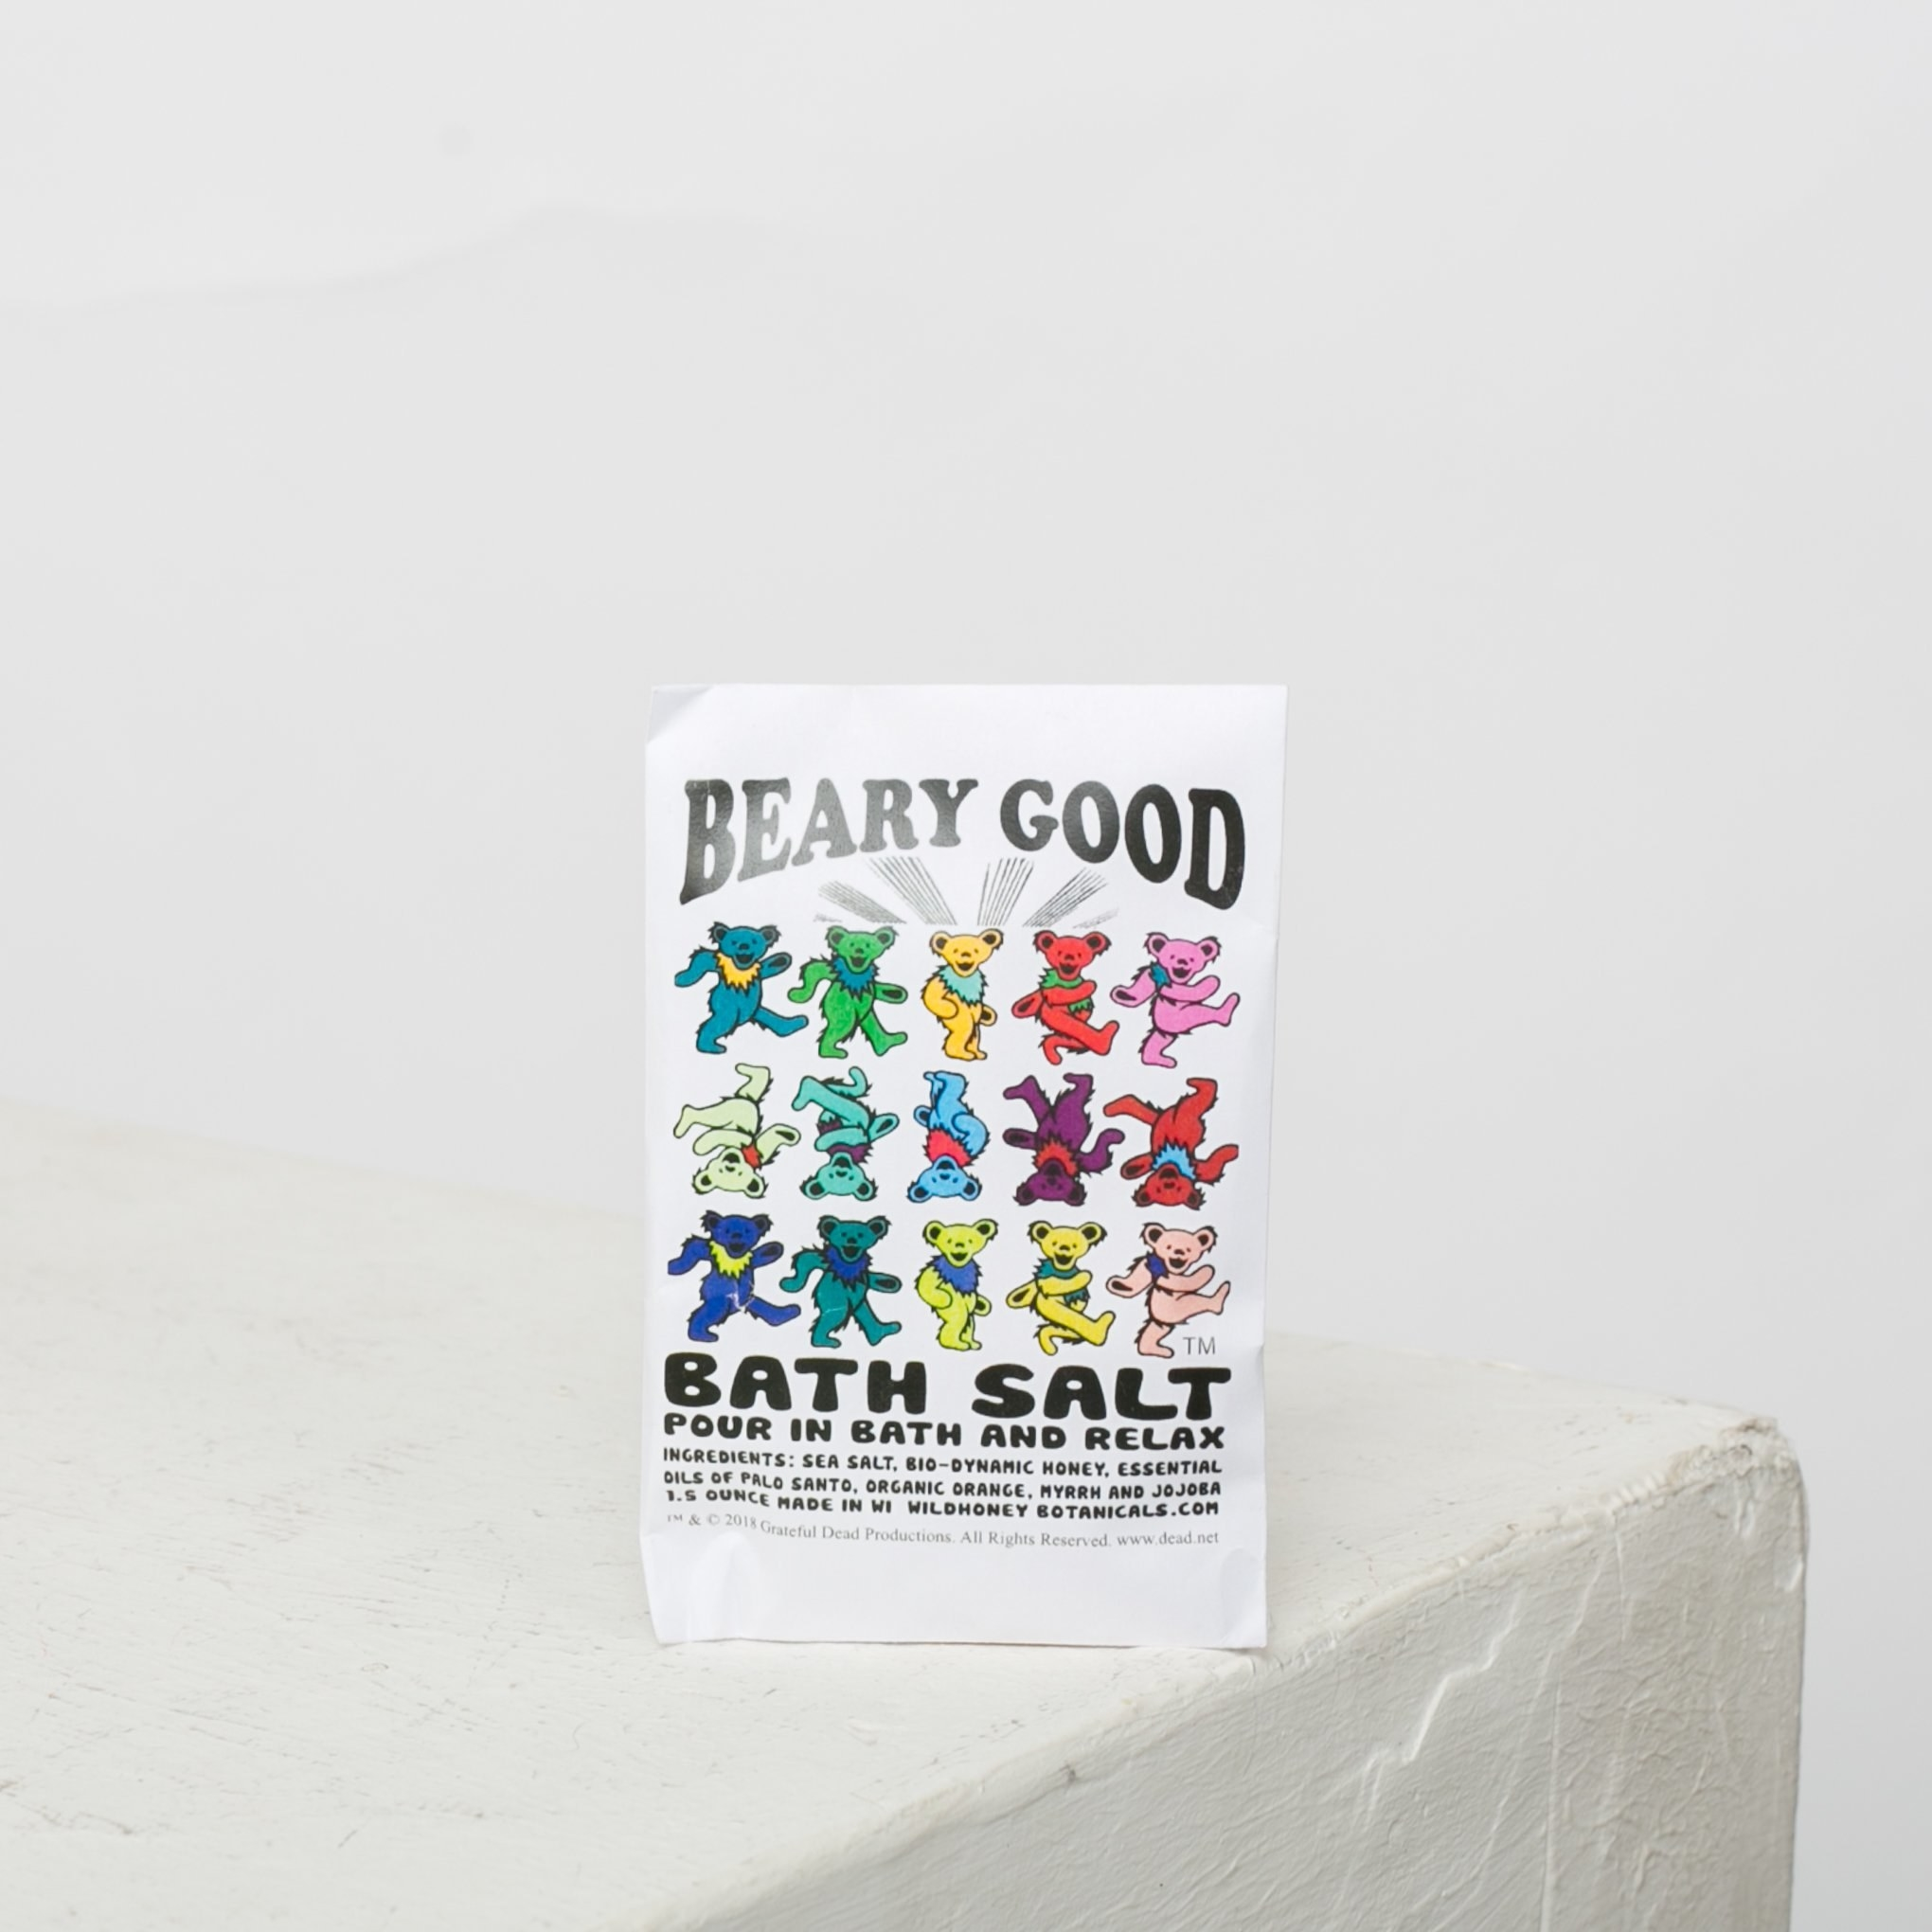 Beary Good bath Salt packaging